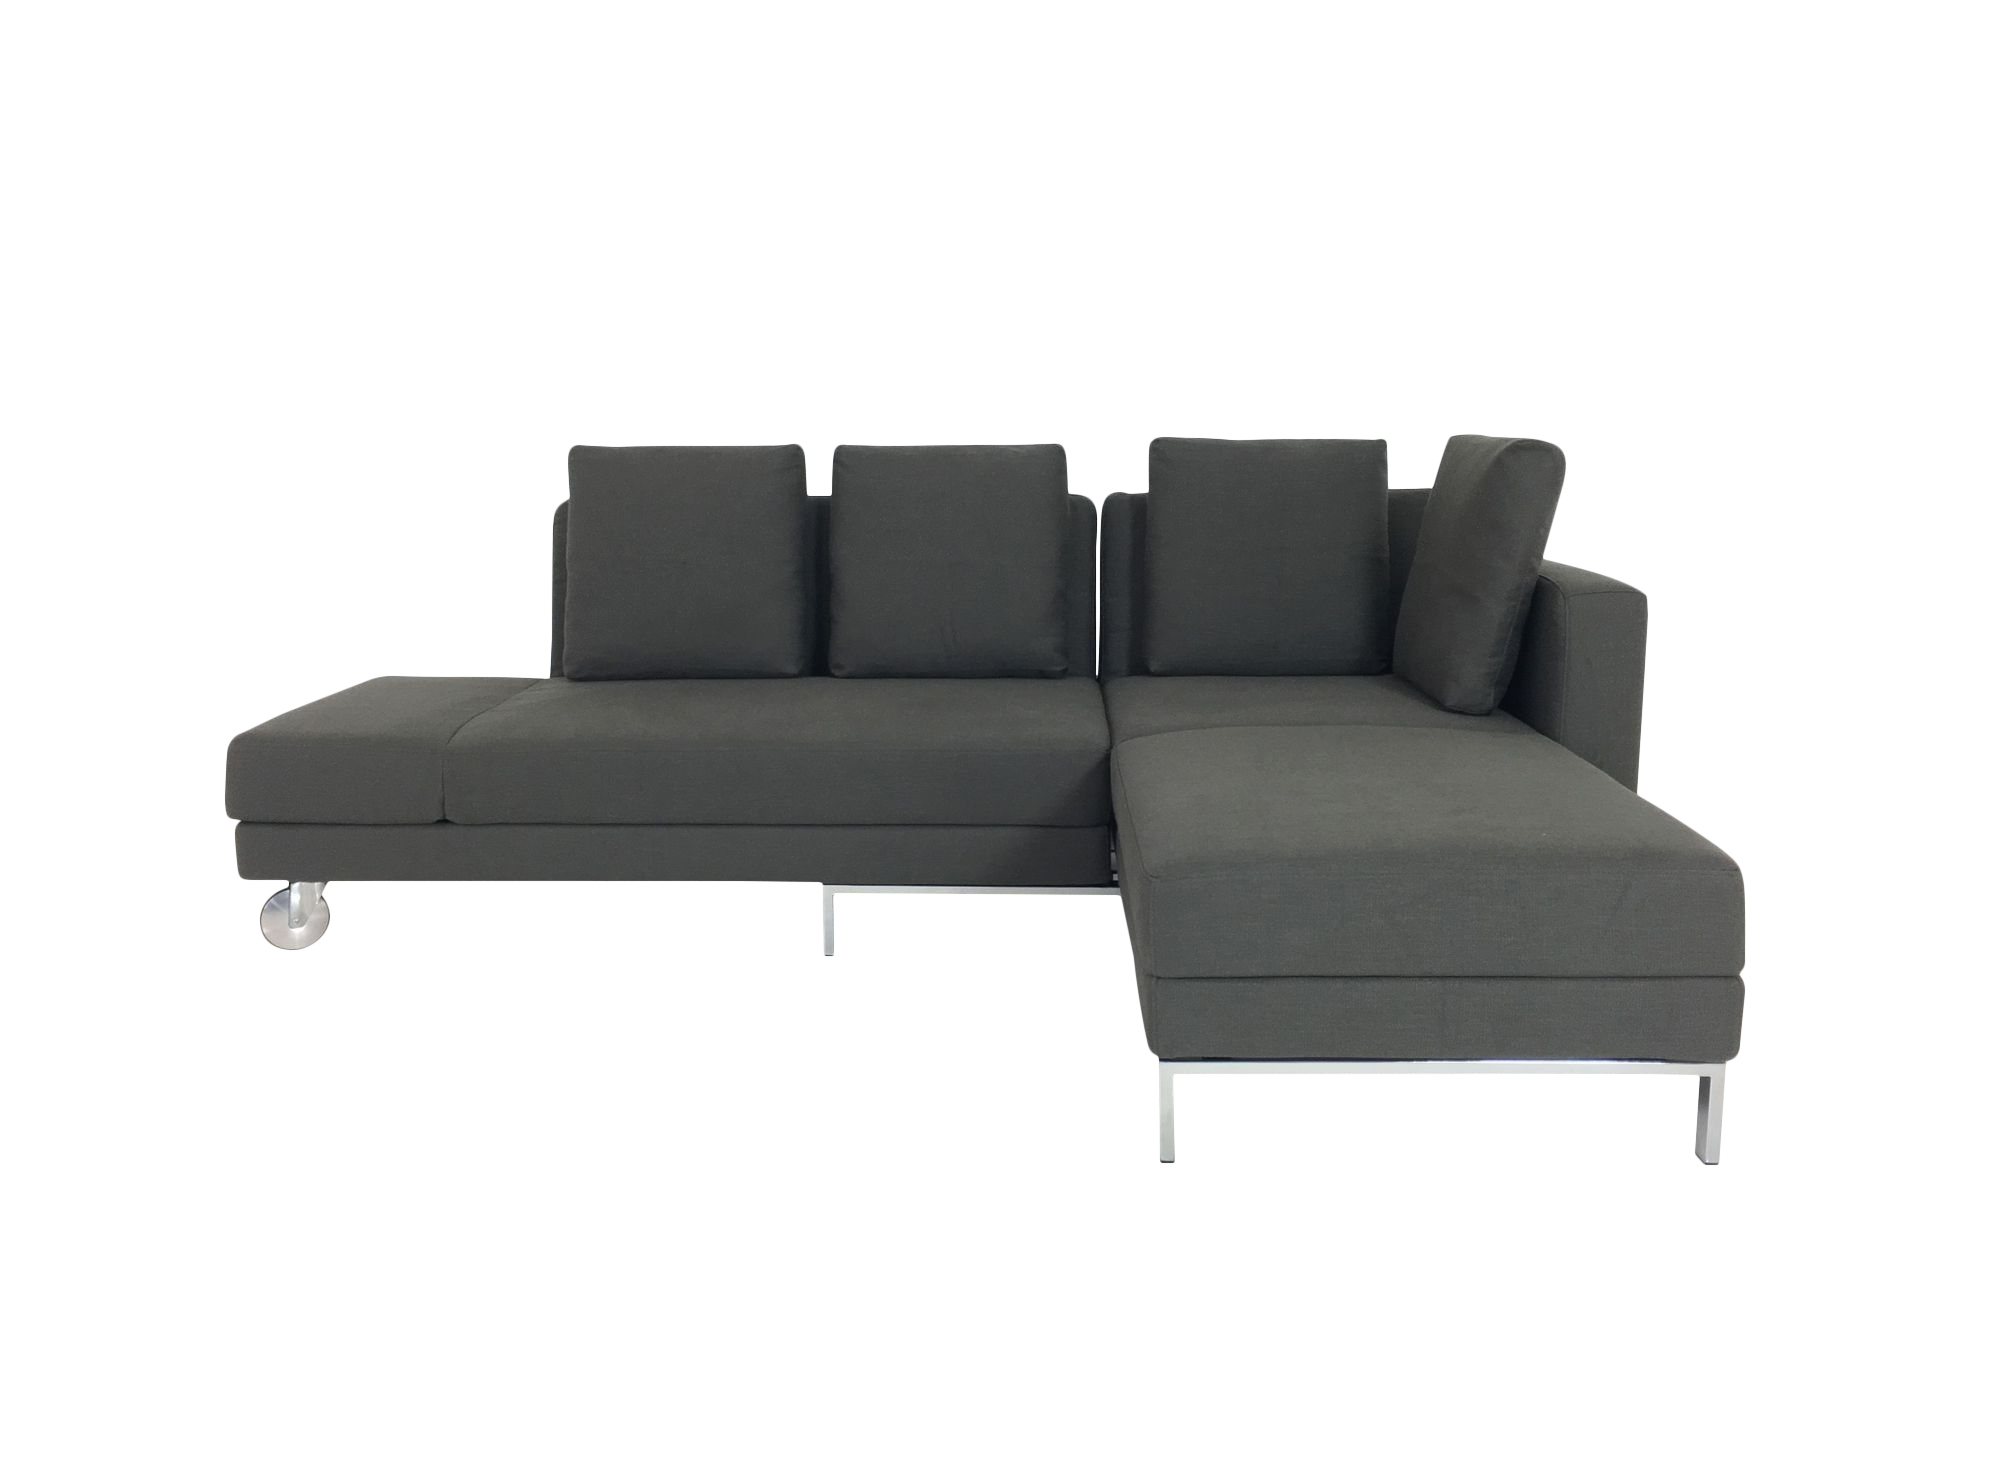 br hl four two sofa mit recamiere und bettfunktion in stoff dunkelgrau br hl schlafsofas. Black Bedroom Furniture Sets. Home Design Ideas